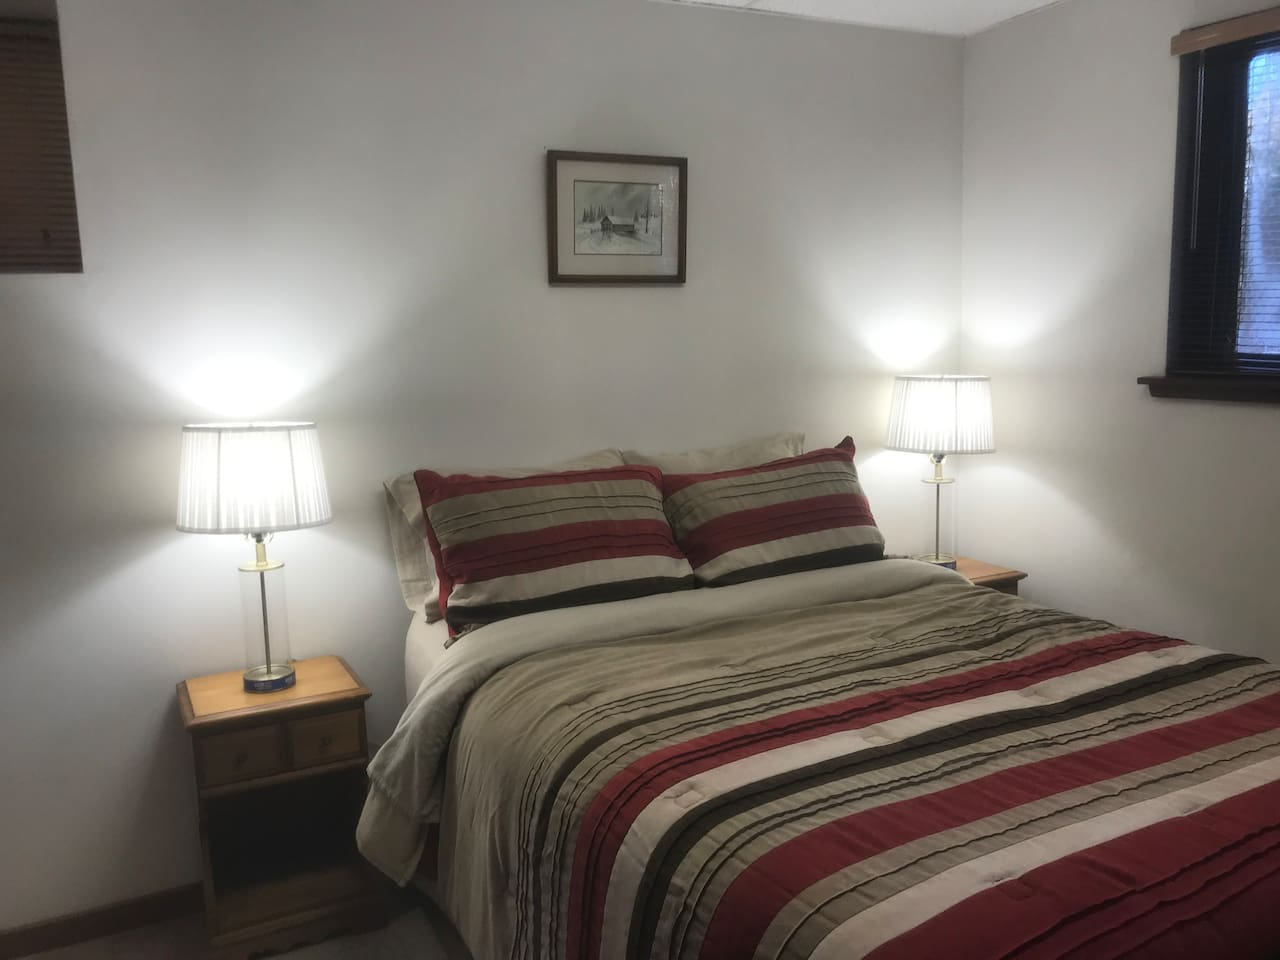 Panther Pond Room:  named after Panther Pond (located nearby.) Sleep well in this cozy 8x10 furnished full size private bedroom.  Enjoy reading in bed on each side and charge devices USB lamps.  Sit up to watch wall-mounted TV w extra pillows.